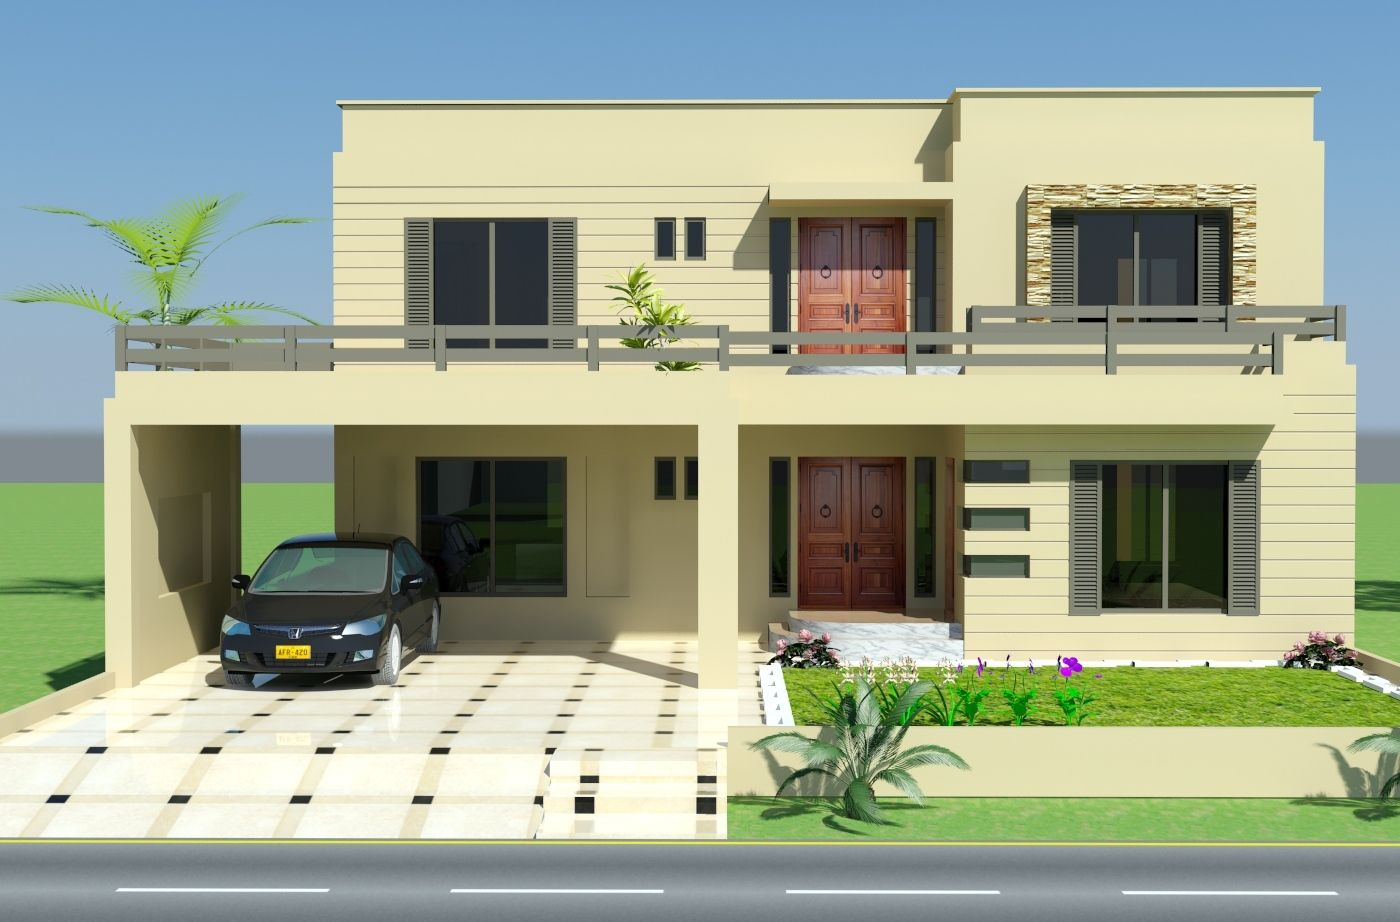 Exterior house design front elevation mi futura casa for Front entrance home designs